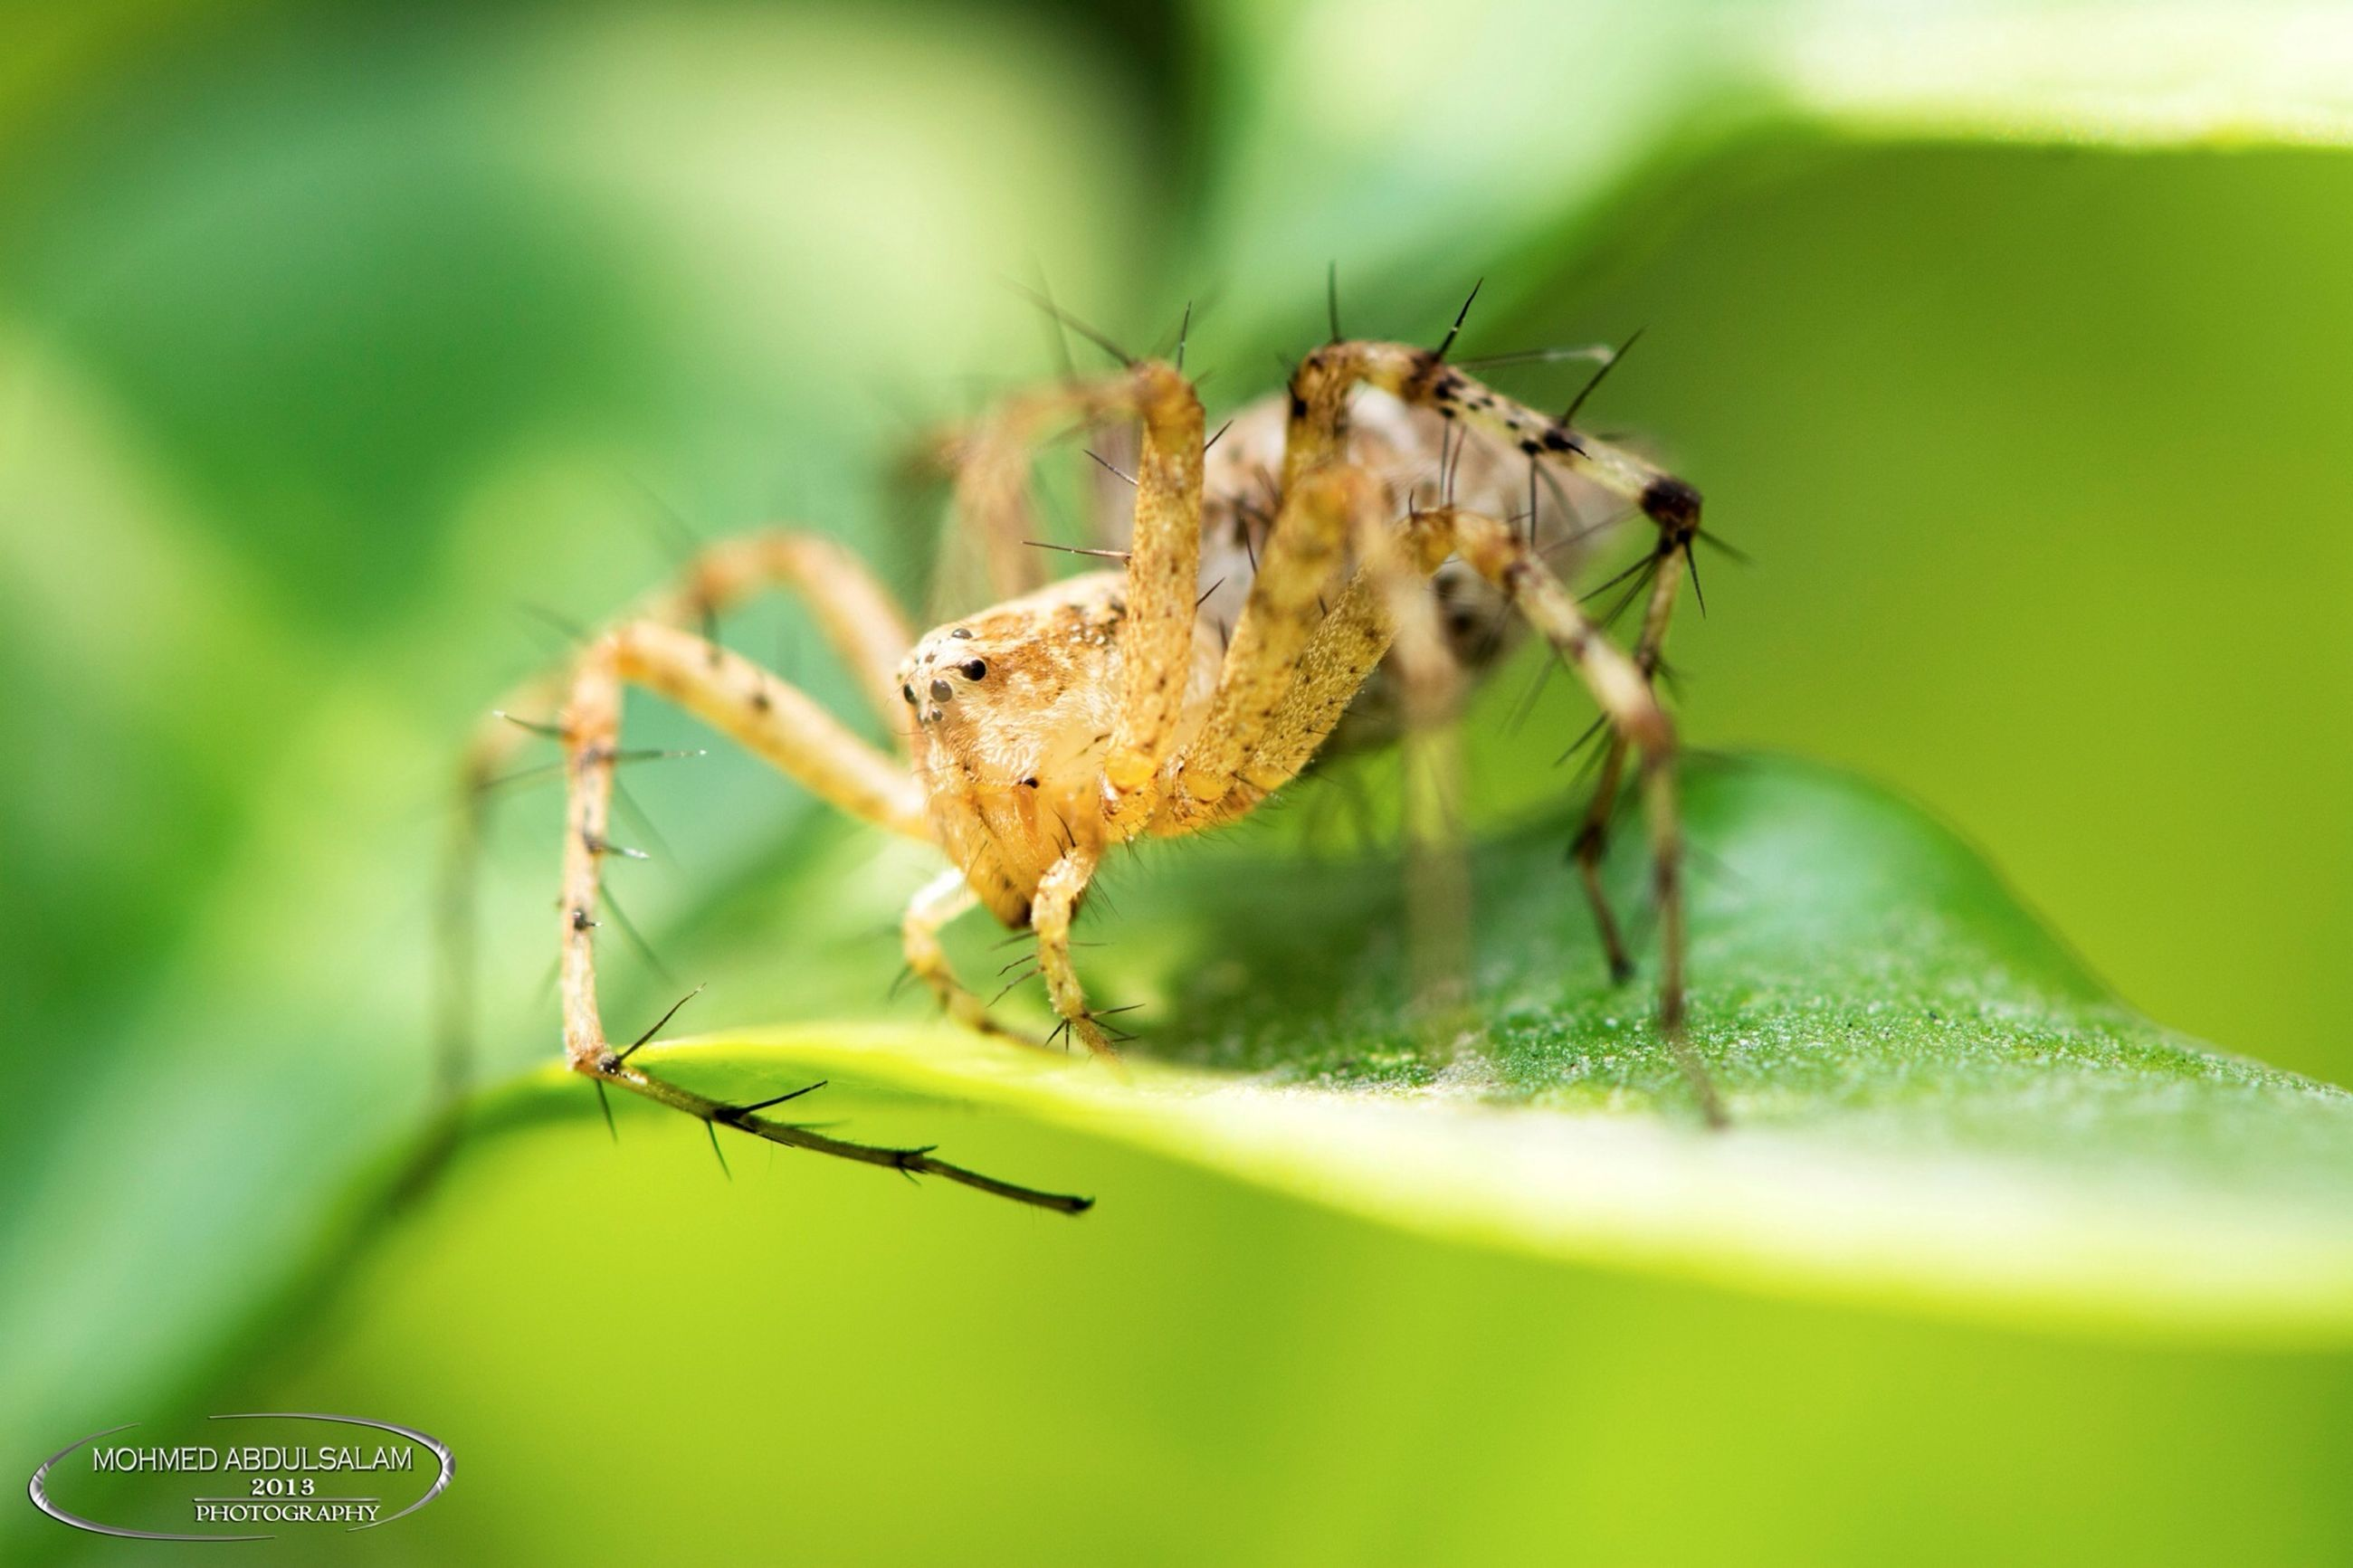 animal themes, animals in the wild, insect, one animal, wildlife, close-up, focus on foreground, selective focus, spider, green color, nature, zoology, day, full length, arthropod, leaf, outdoors, no people, plant, dragonfly